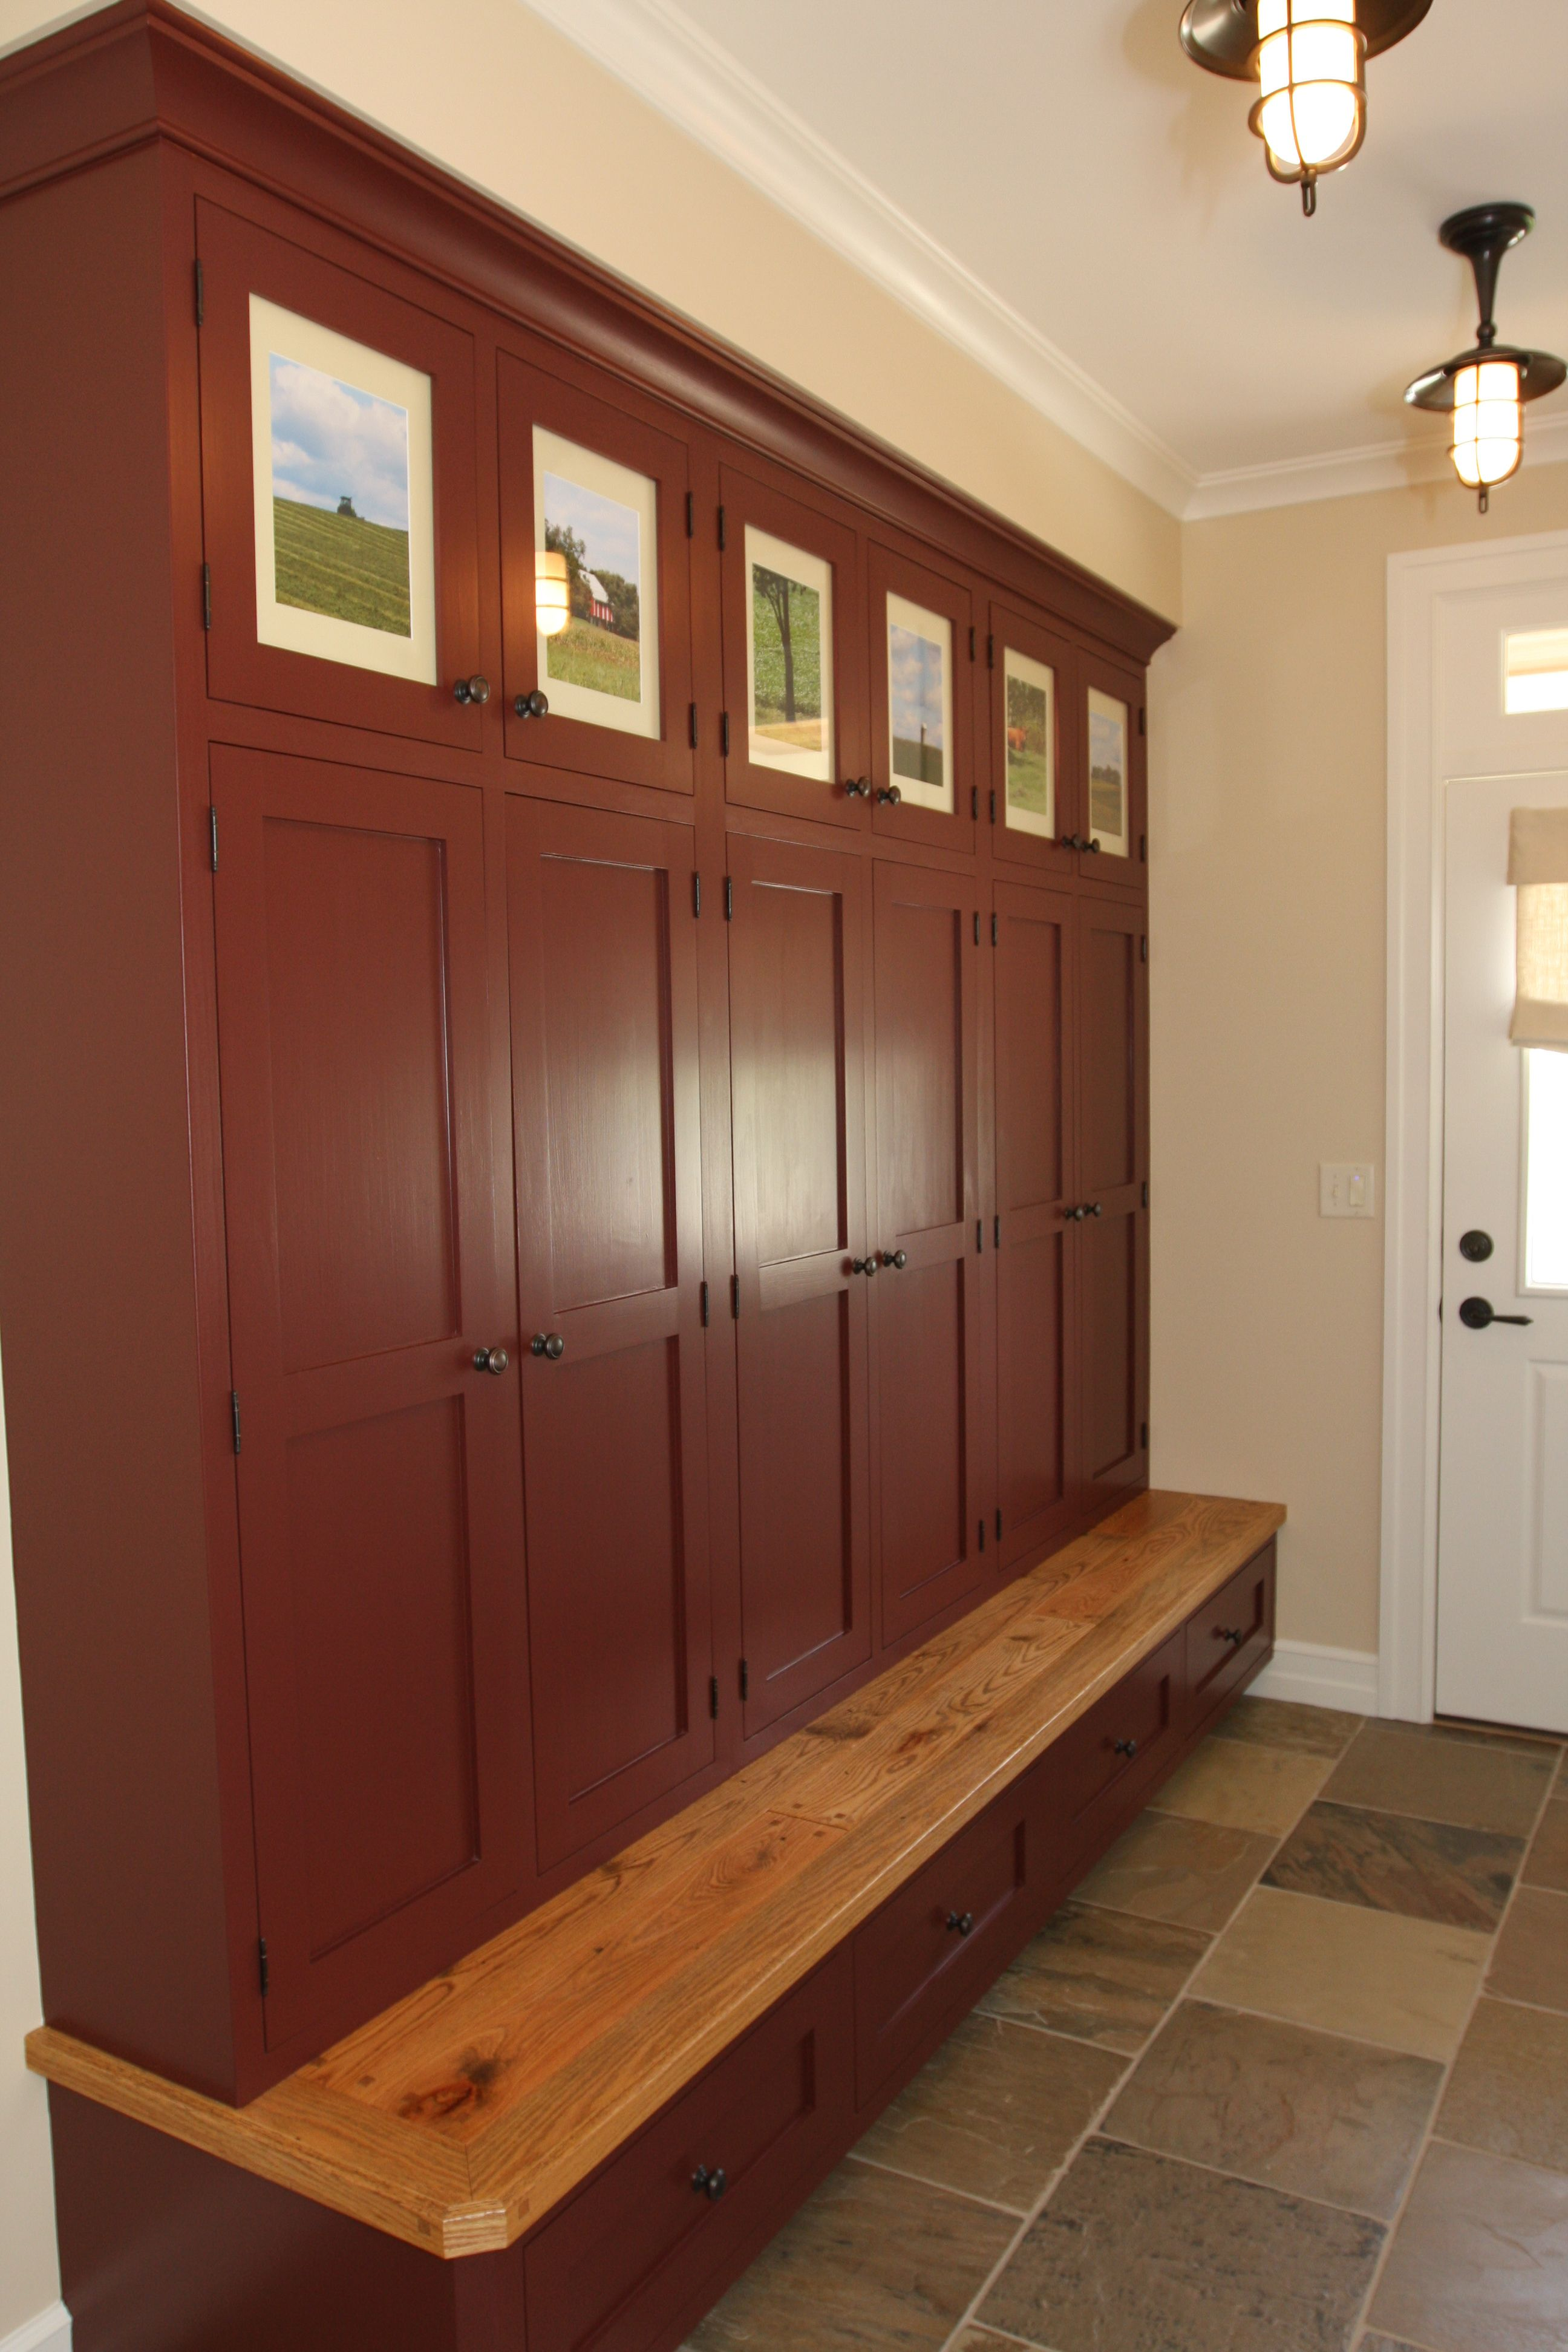 Maroon cubbies with built in bench for mud room entry way storange